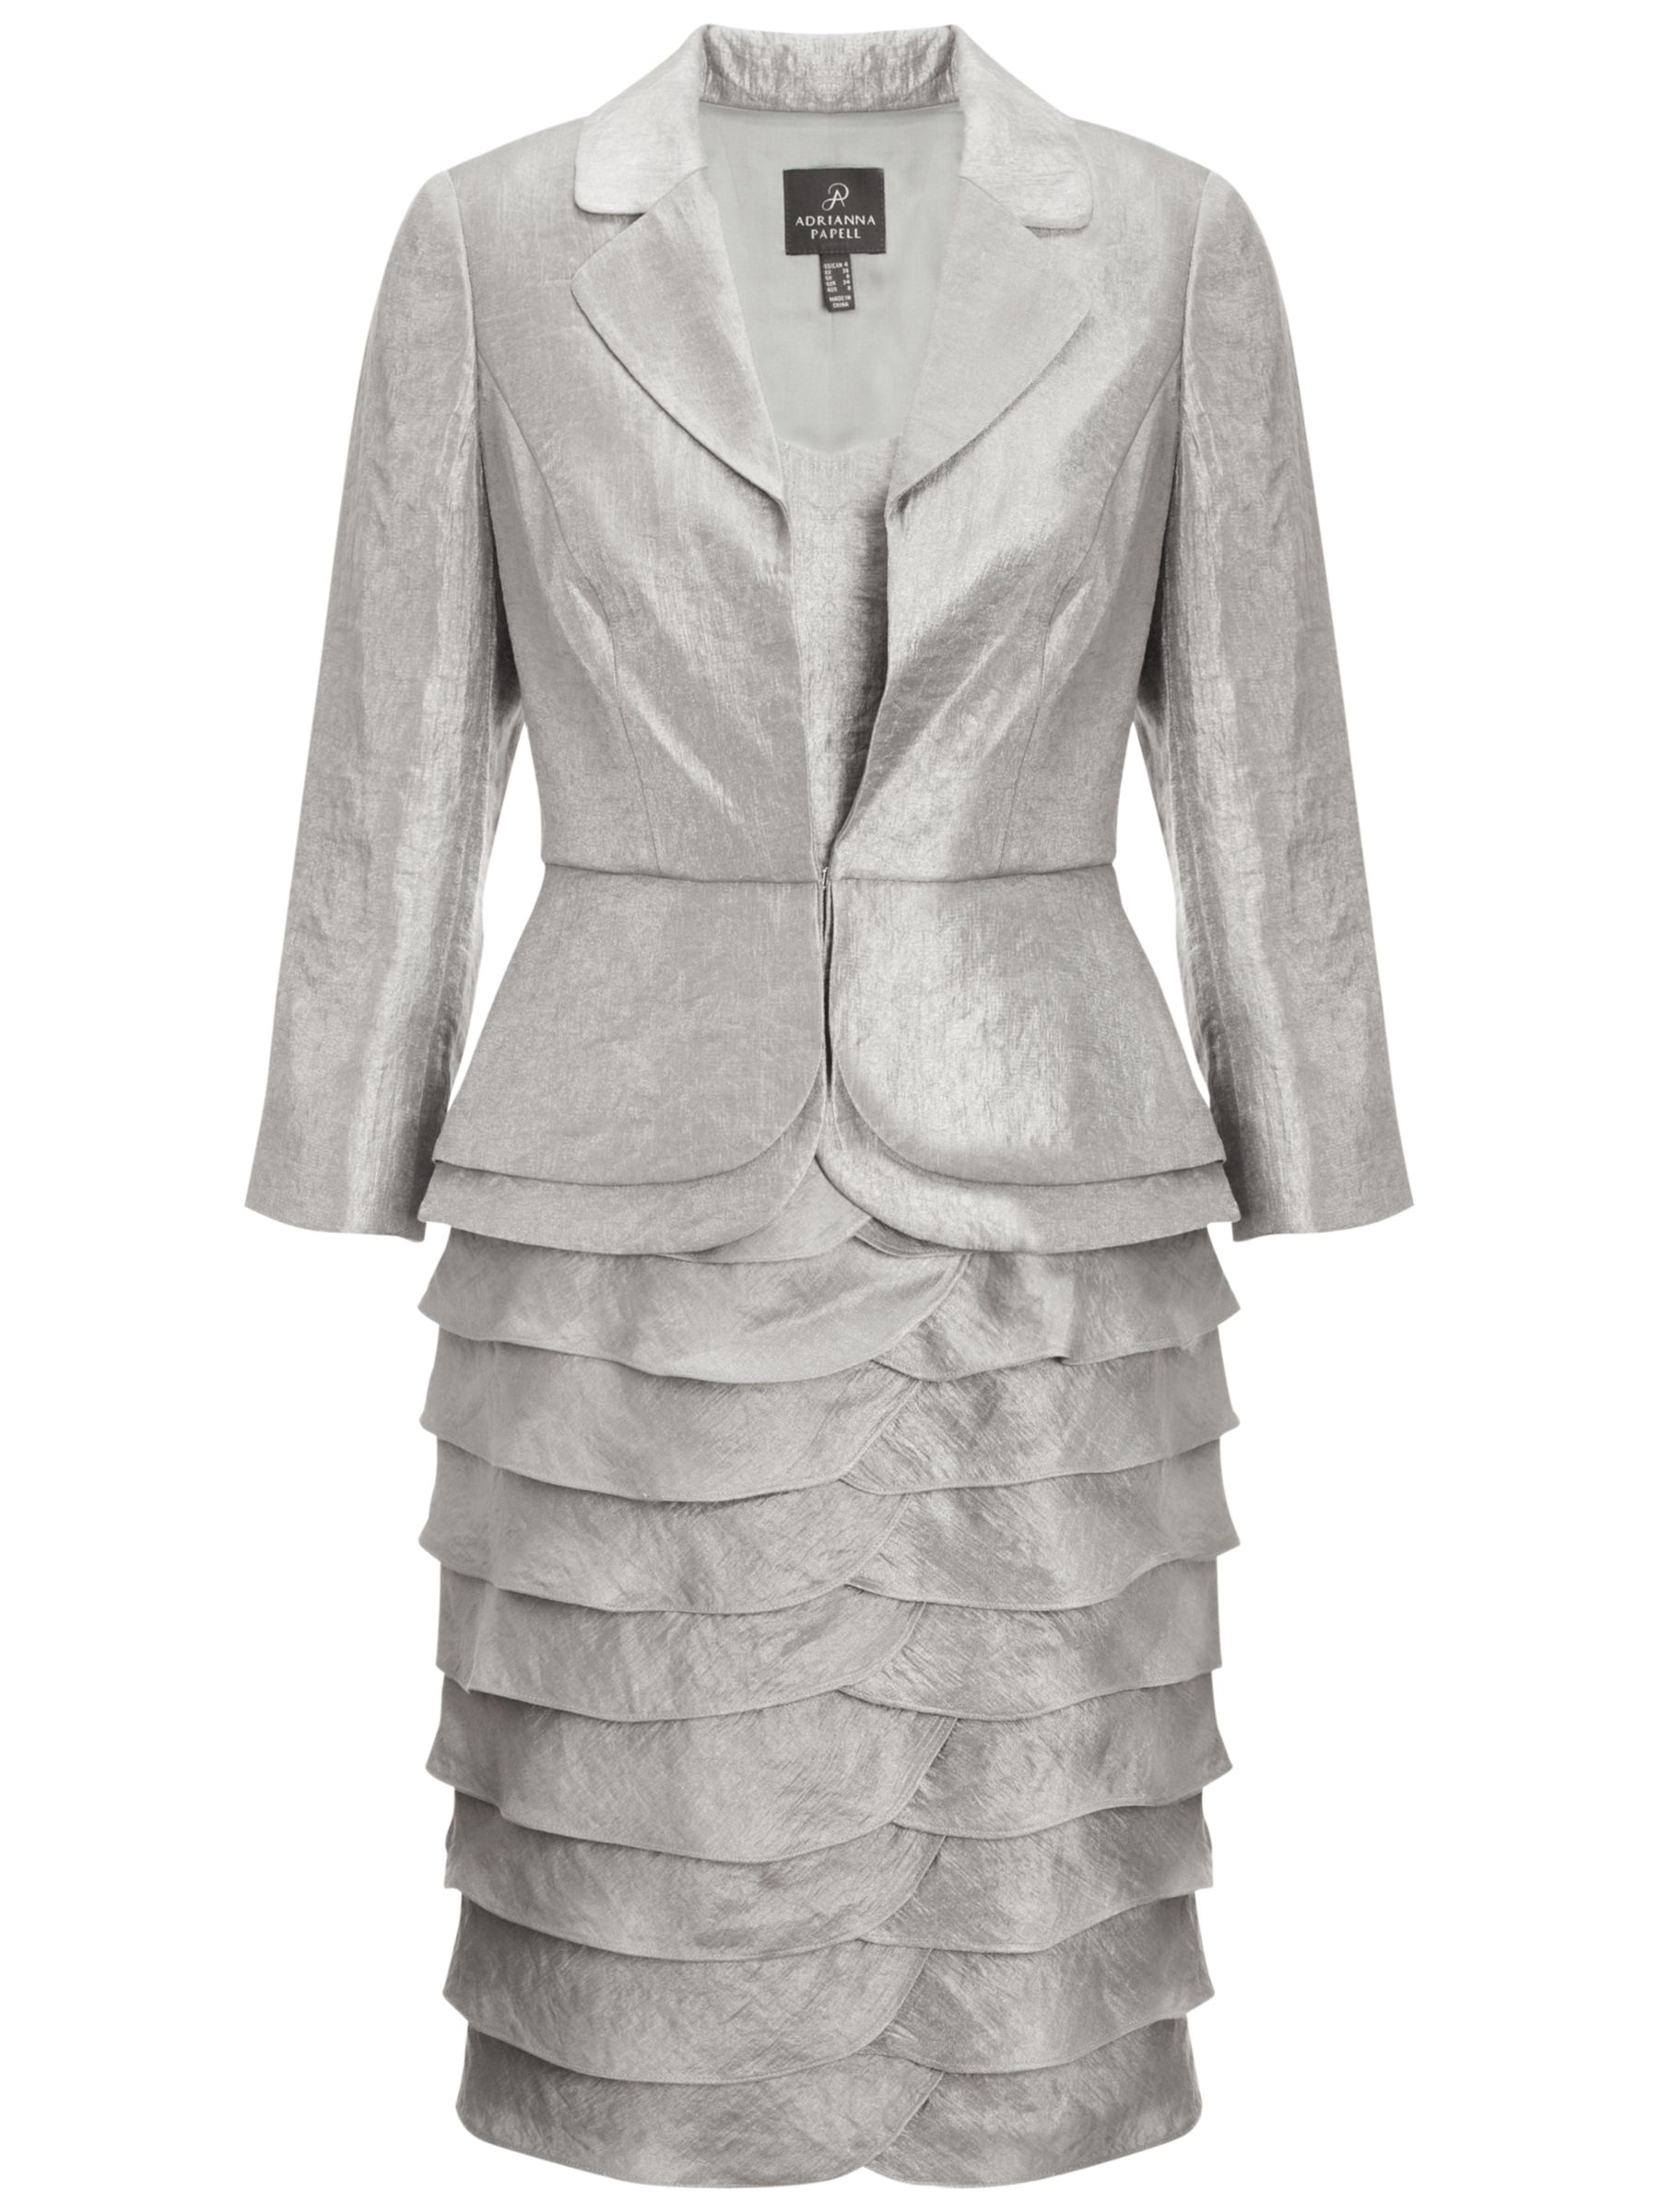 adrianna papell peplum jacket shimmer dress platinum, adrianna, papell, peplum, jacket, shimmer, dress, platinum, adrianna papell, 8|14|20|16|10|12|18, special offers, womenswear offers, 30% off selected adrianna papell, women, womens dresses, gifts, wedding, wedding clothing, mother of the bride, 1765383